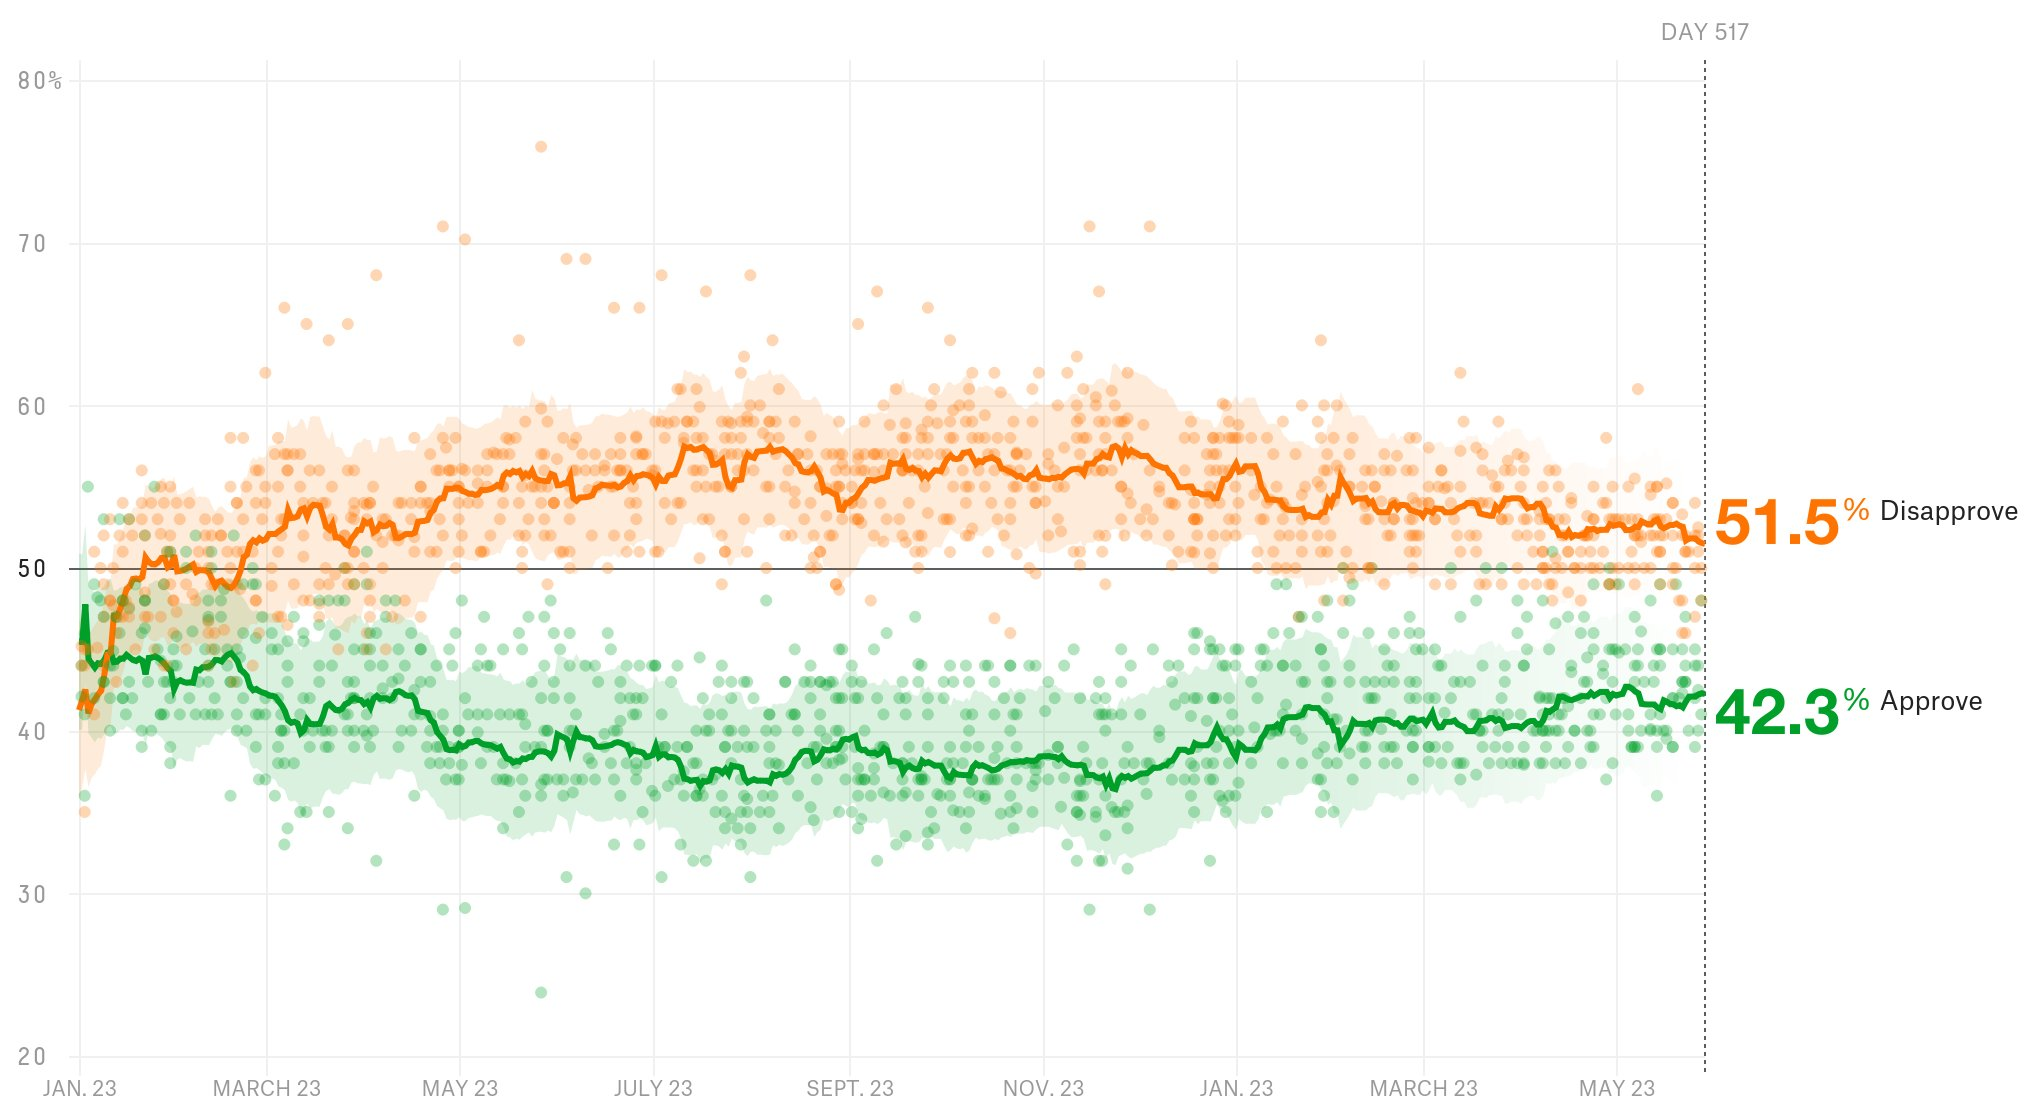 President Donald Trump has a 42.3% approval rating. https://t.co/gFuJdJjGOg https://t.co/GtUGyfoHR9